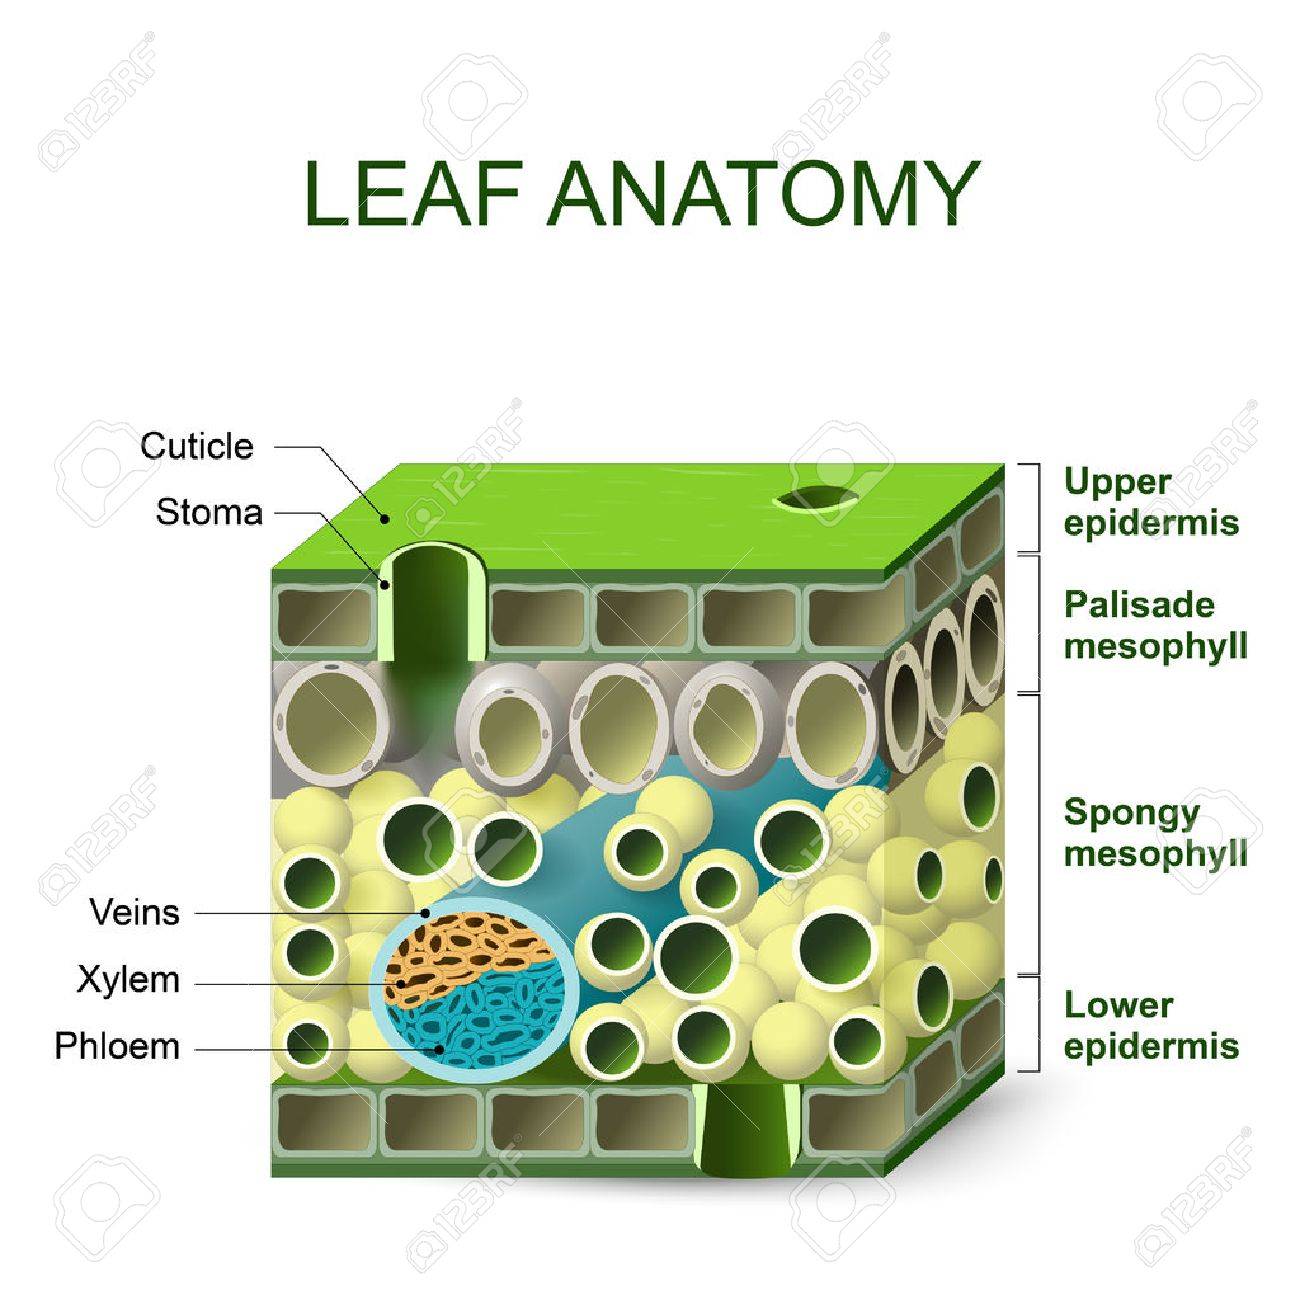 hight resolution of leaf anatomy diagram of leaf structure royalty free cliparts